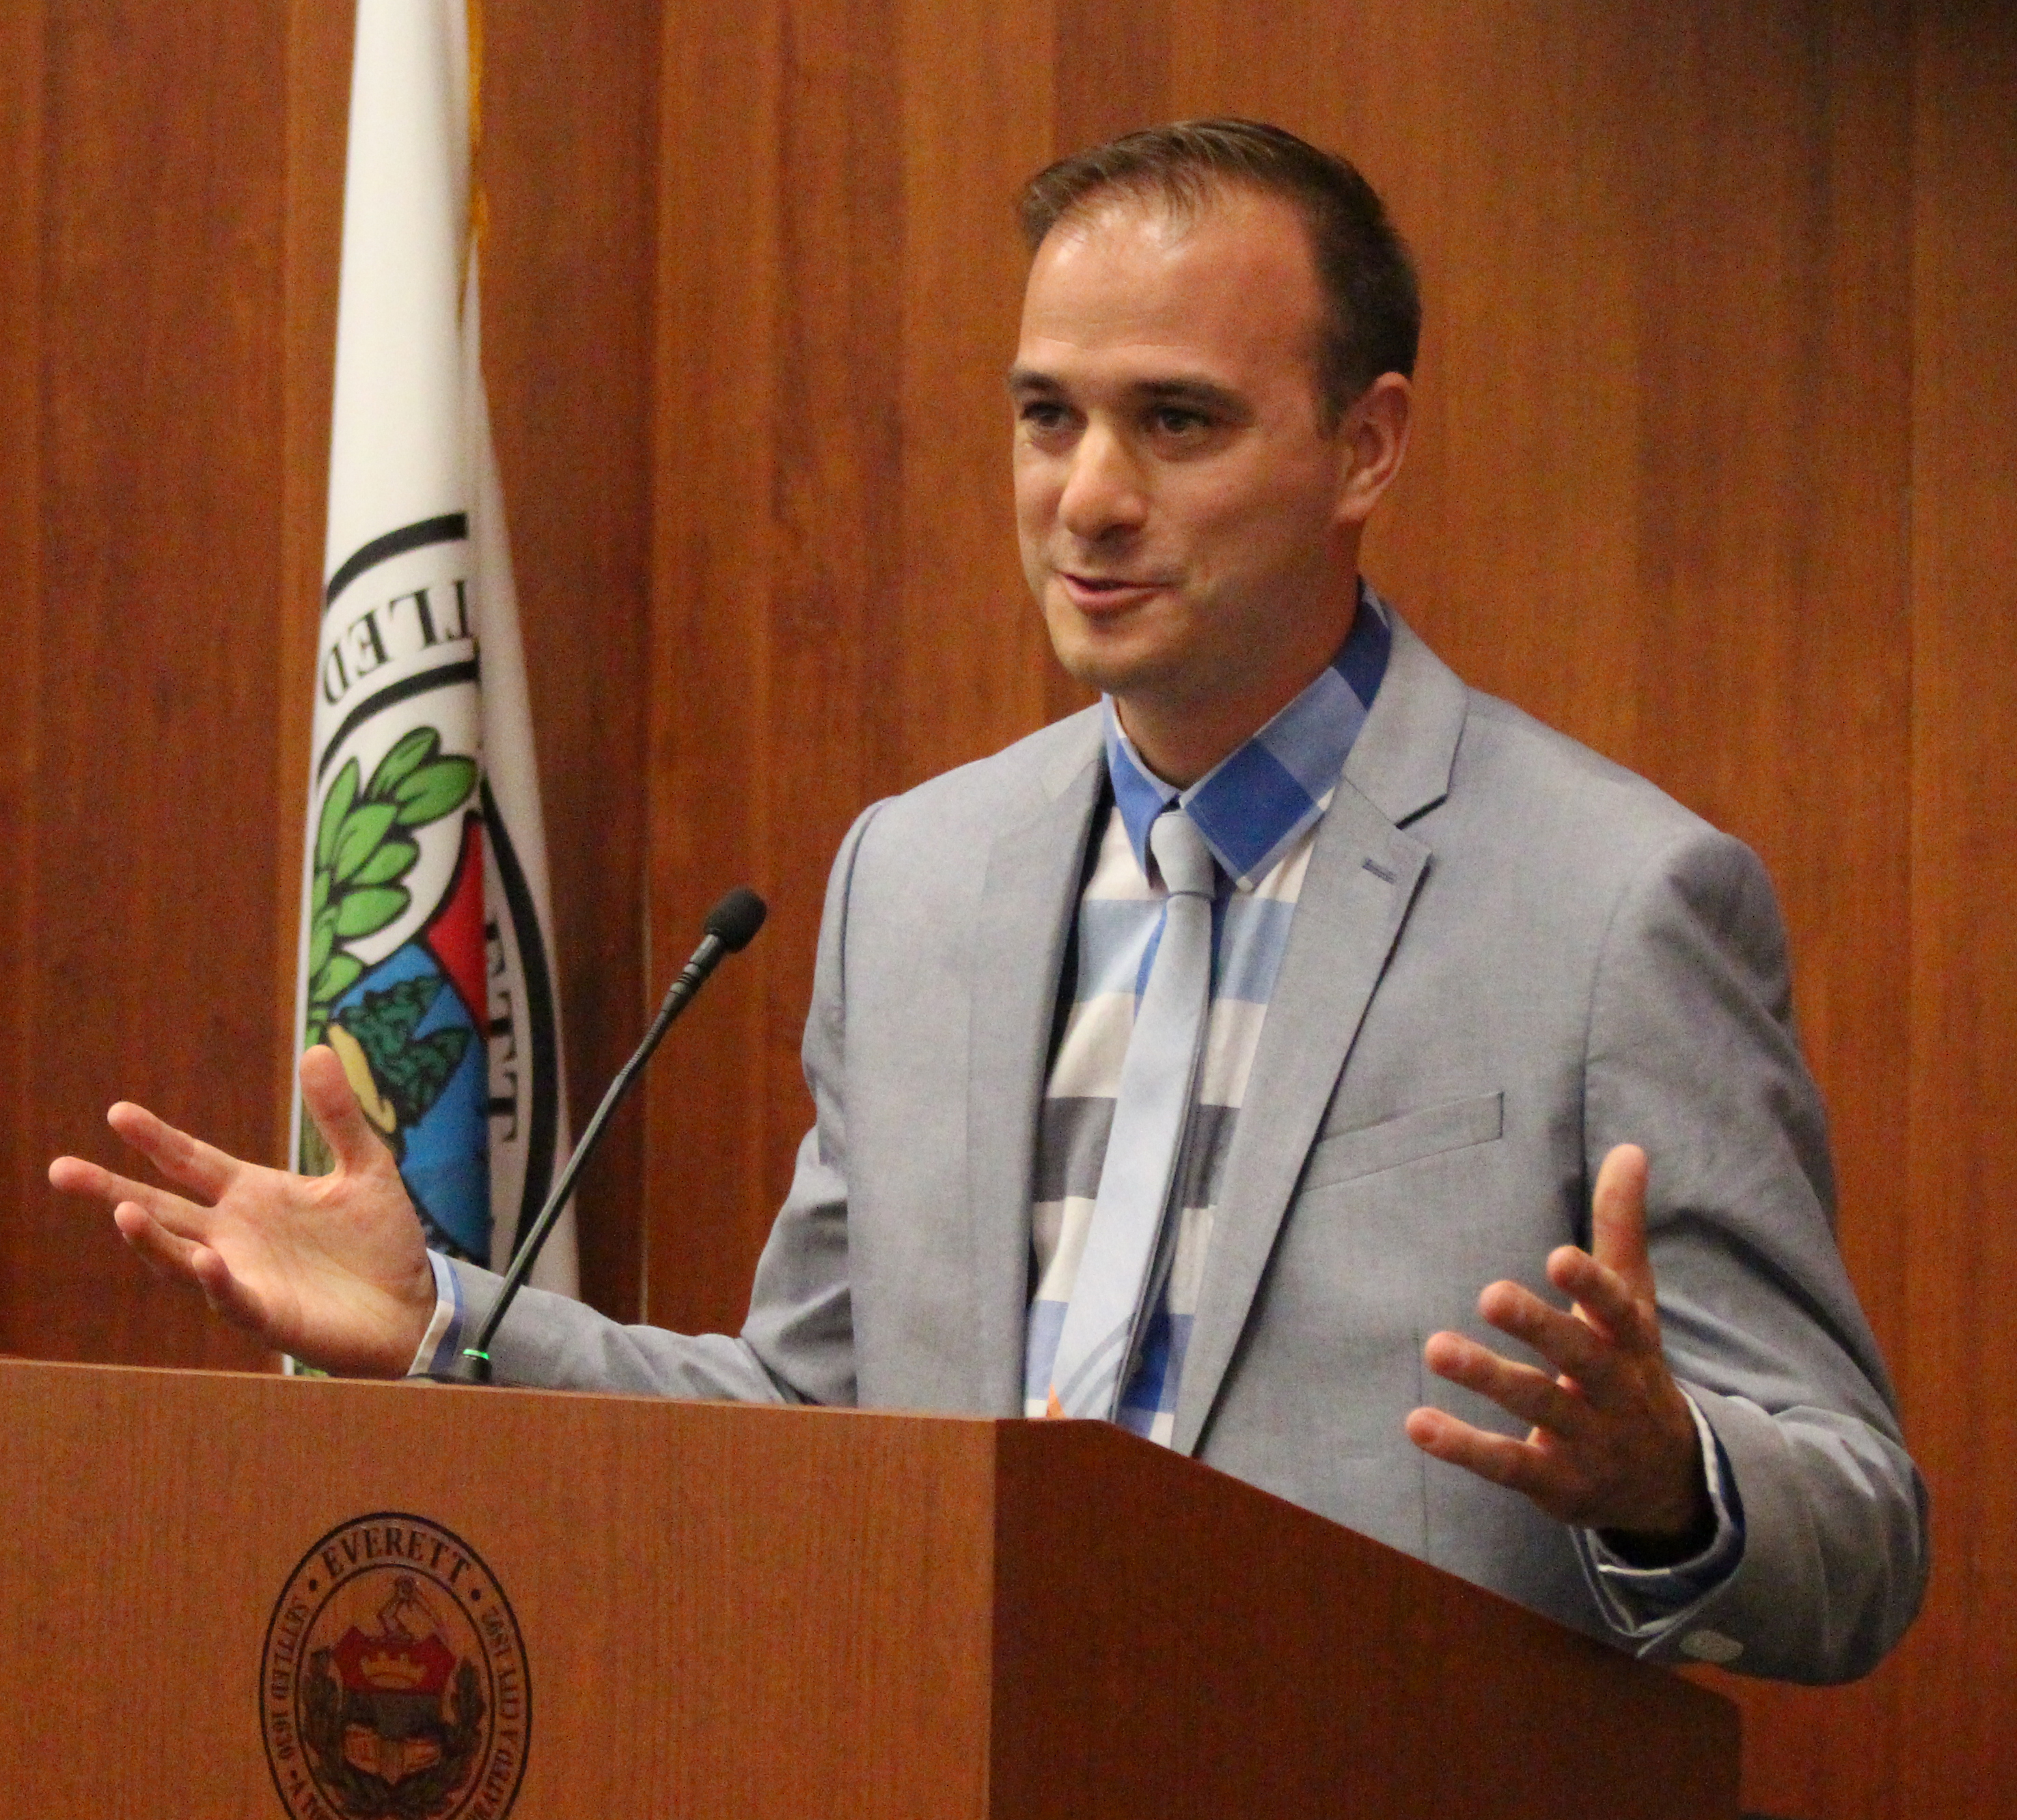 "Sergio Cornelio addresses the City Council shortly after being sworn-in as City Clerk. --- Longtime City Clerk and 40-year public servant Michael Matarazzo – known throughout City Hall as the ""Everett Historian"" – retired on June 28. Reflecting on his tenure, Matarazzo is proud to have stayed ""above the fray"" during his tenure, maintaining the City Clerk's Office's neutrality in the midst of Everett's sometimes hardball politics. ""I'm fortunate. I've had good relationships with all the mayors. I was able to serve and not make other people's enemies my enemies. I was able to stay above that and bring that neutrality to the Clerk's Office – stay at arm's length from all the personal and political fights, which is what people want from the position. That's something I'm really proud to have been able to have done."" His Assistant Clerk, Sergio Cornelio, was appointed by the City Council as his successor on August 3. ""I promise to work harder and harder to be the best city clerk I can be,"" said Cornelio. ""I don't intend to be John Hanlon or Mike Matarazzo. I intend to be my own man, but I've learned from them."" On Monday, September 25, former Mayor David Ragucci was appointed Assistant City Clerk."